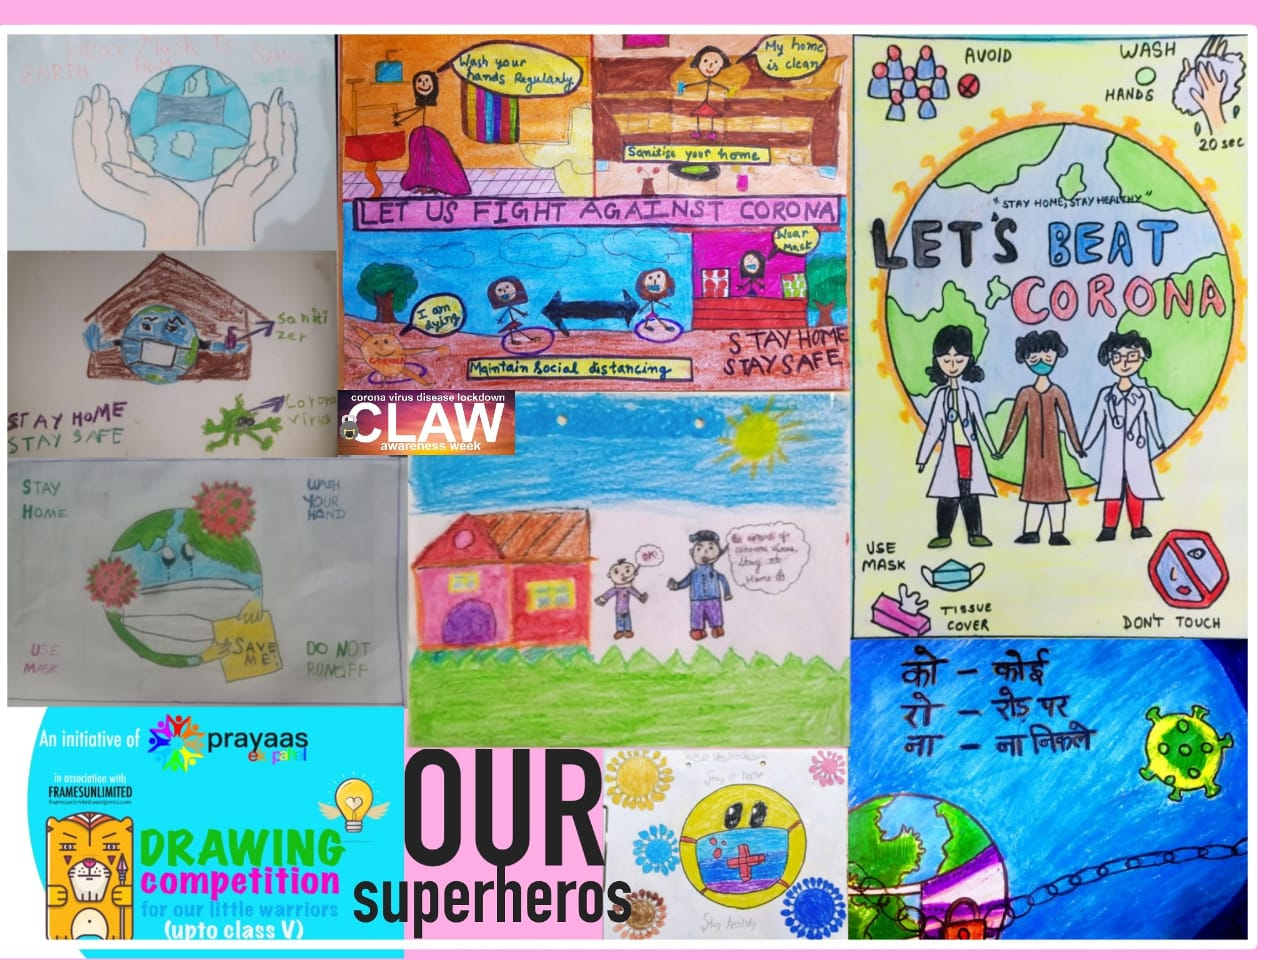 Result of Coronavirus Awareness Poster Drawing Competition